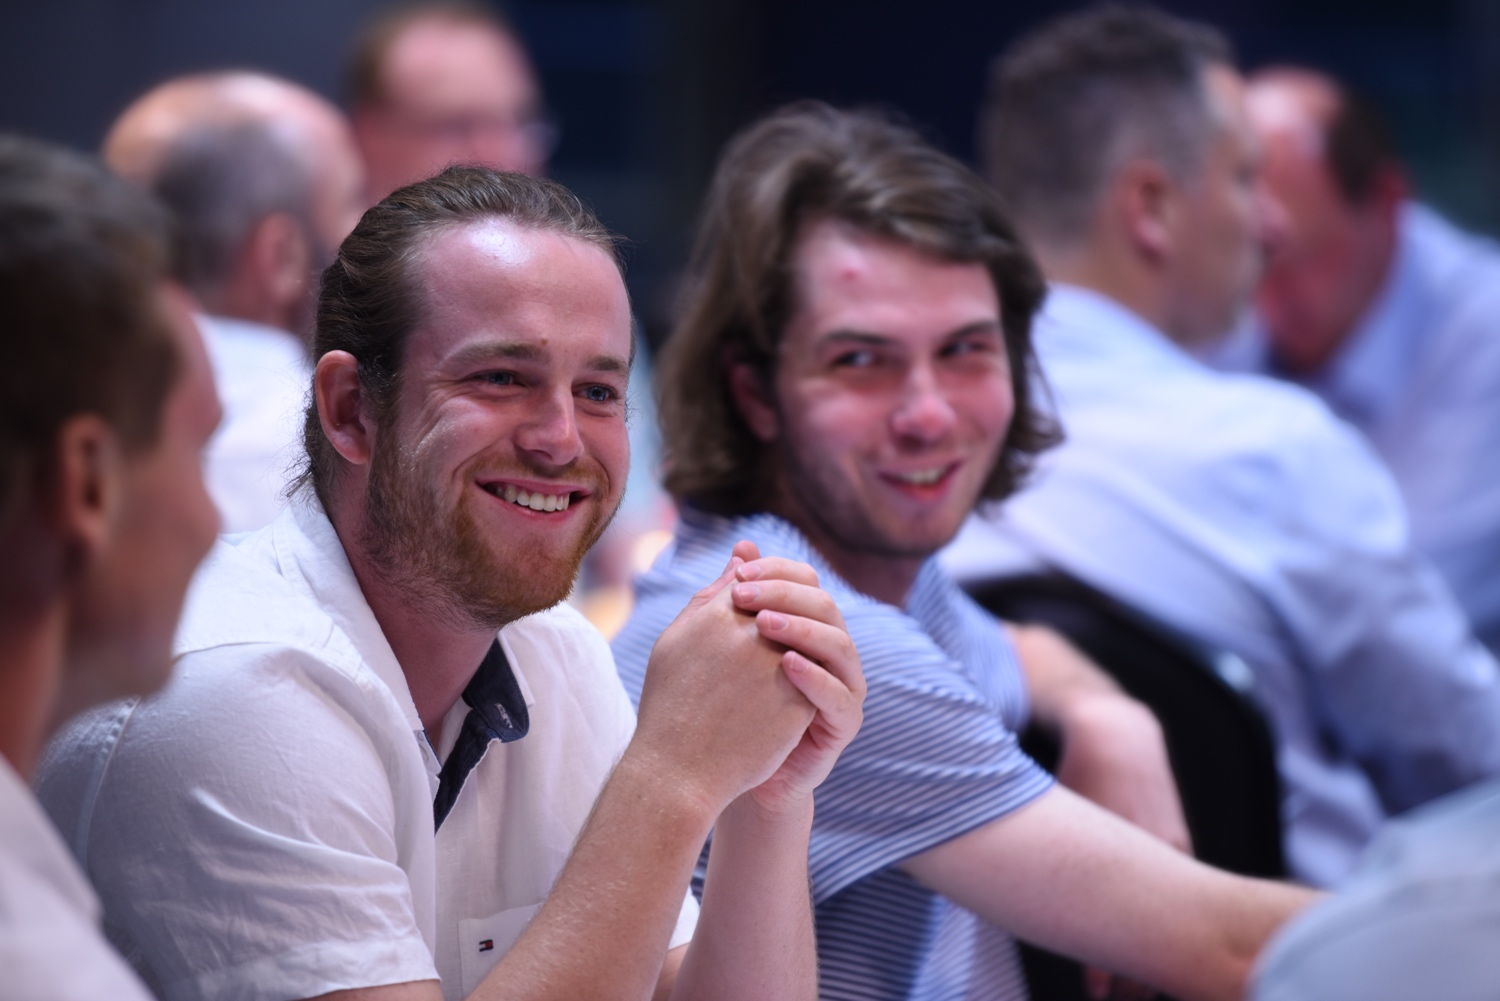 (L to R) Nick Watty and Lachlan Evans enjoying the night.